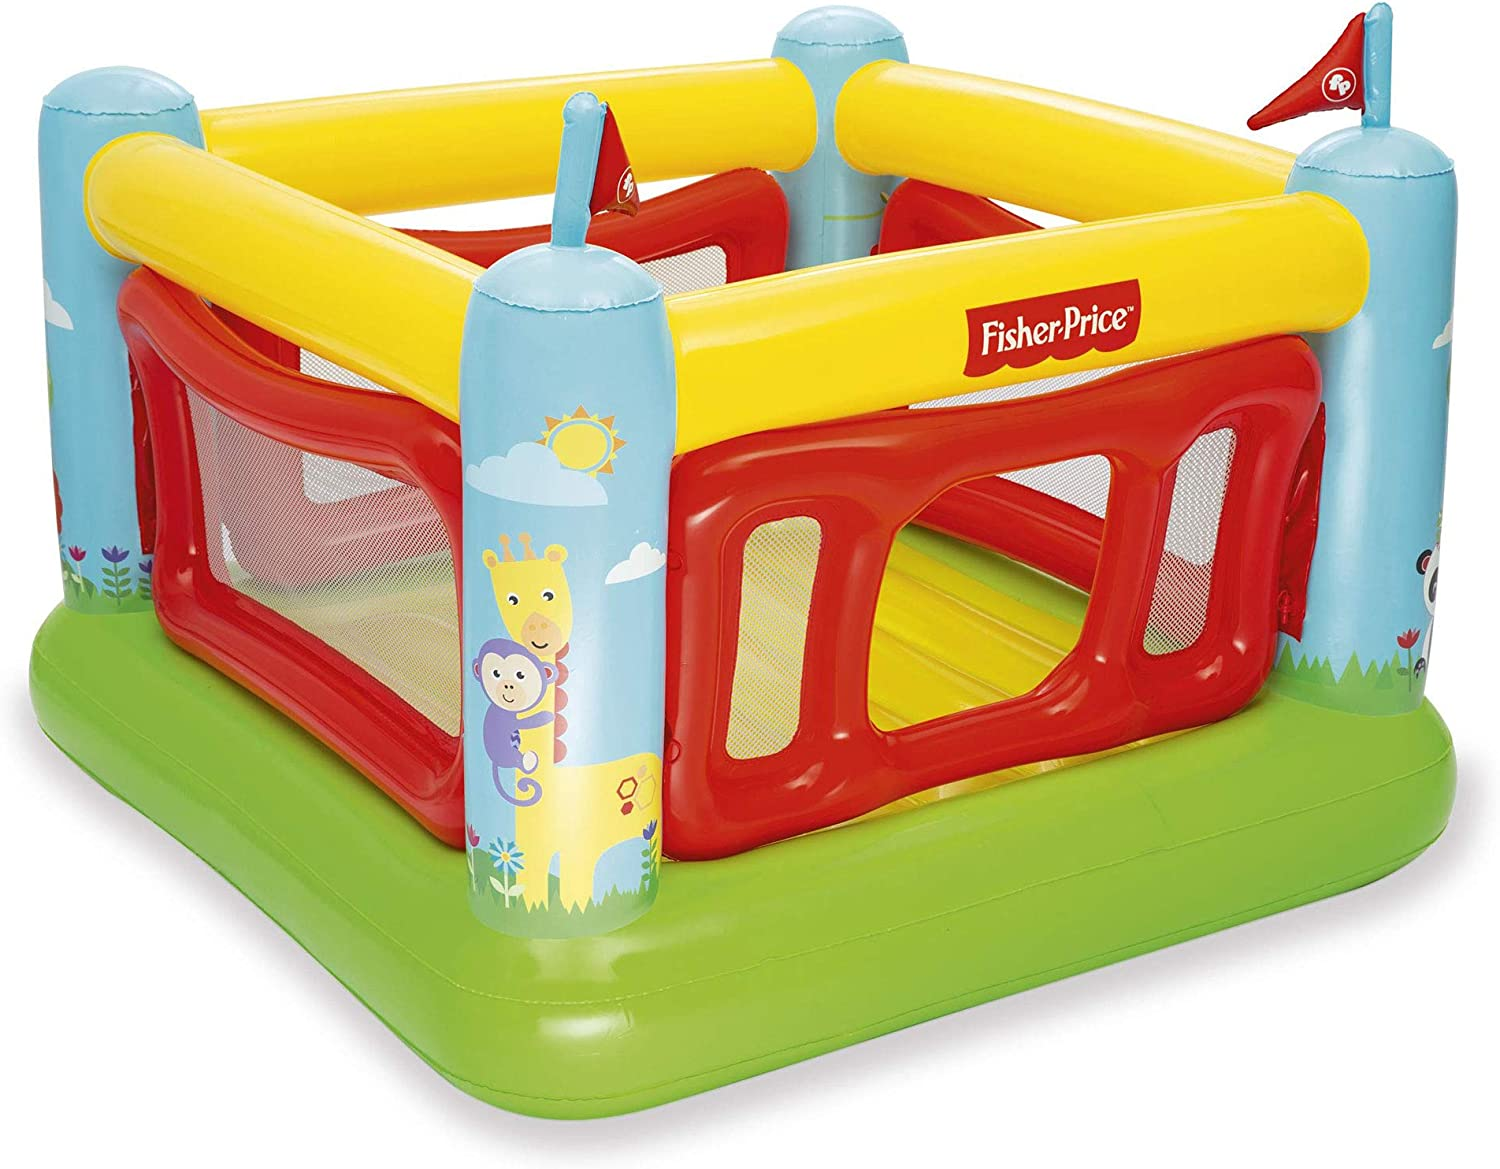 Fisher-Price 69 x 68 x 53 Inch Kids Indoor/Outdoor Bouncetastic Bouncer Inflatable Bounce House Bouncy Castle